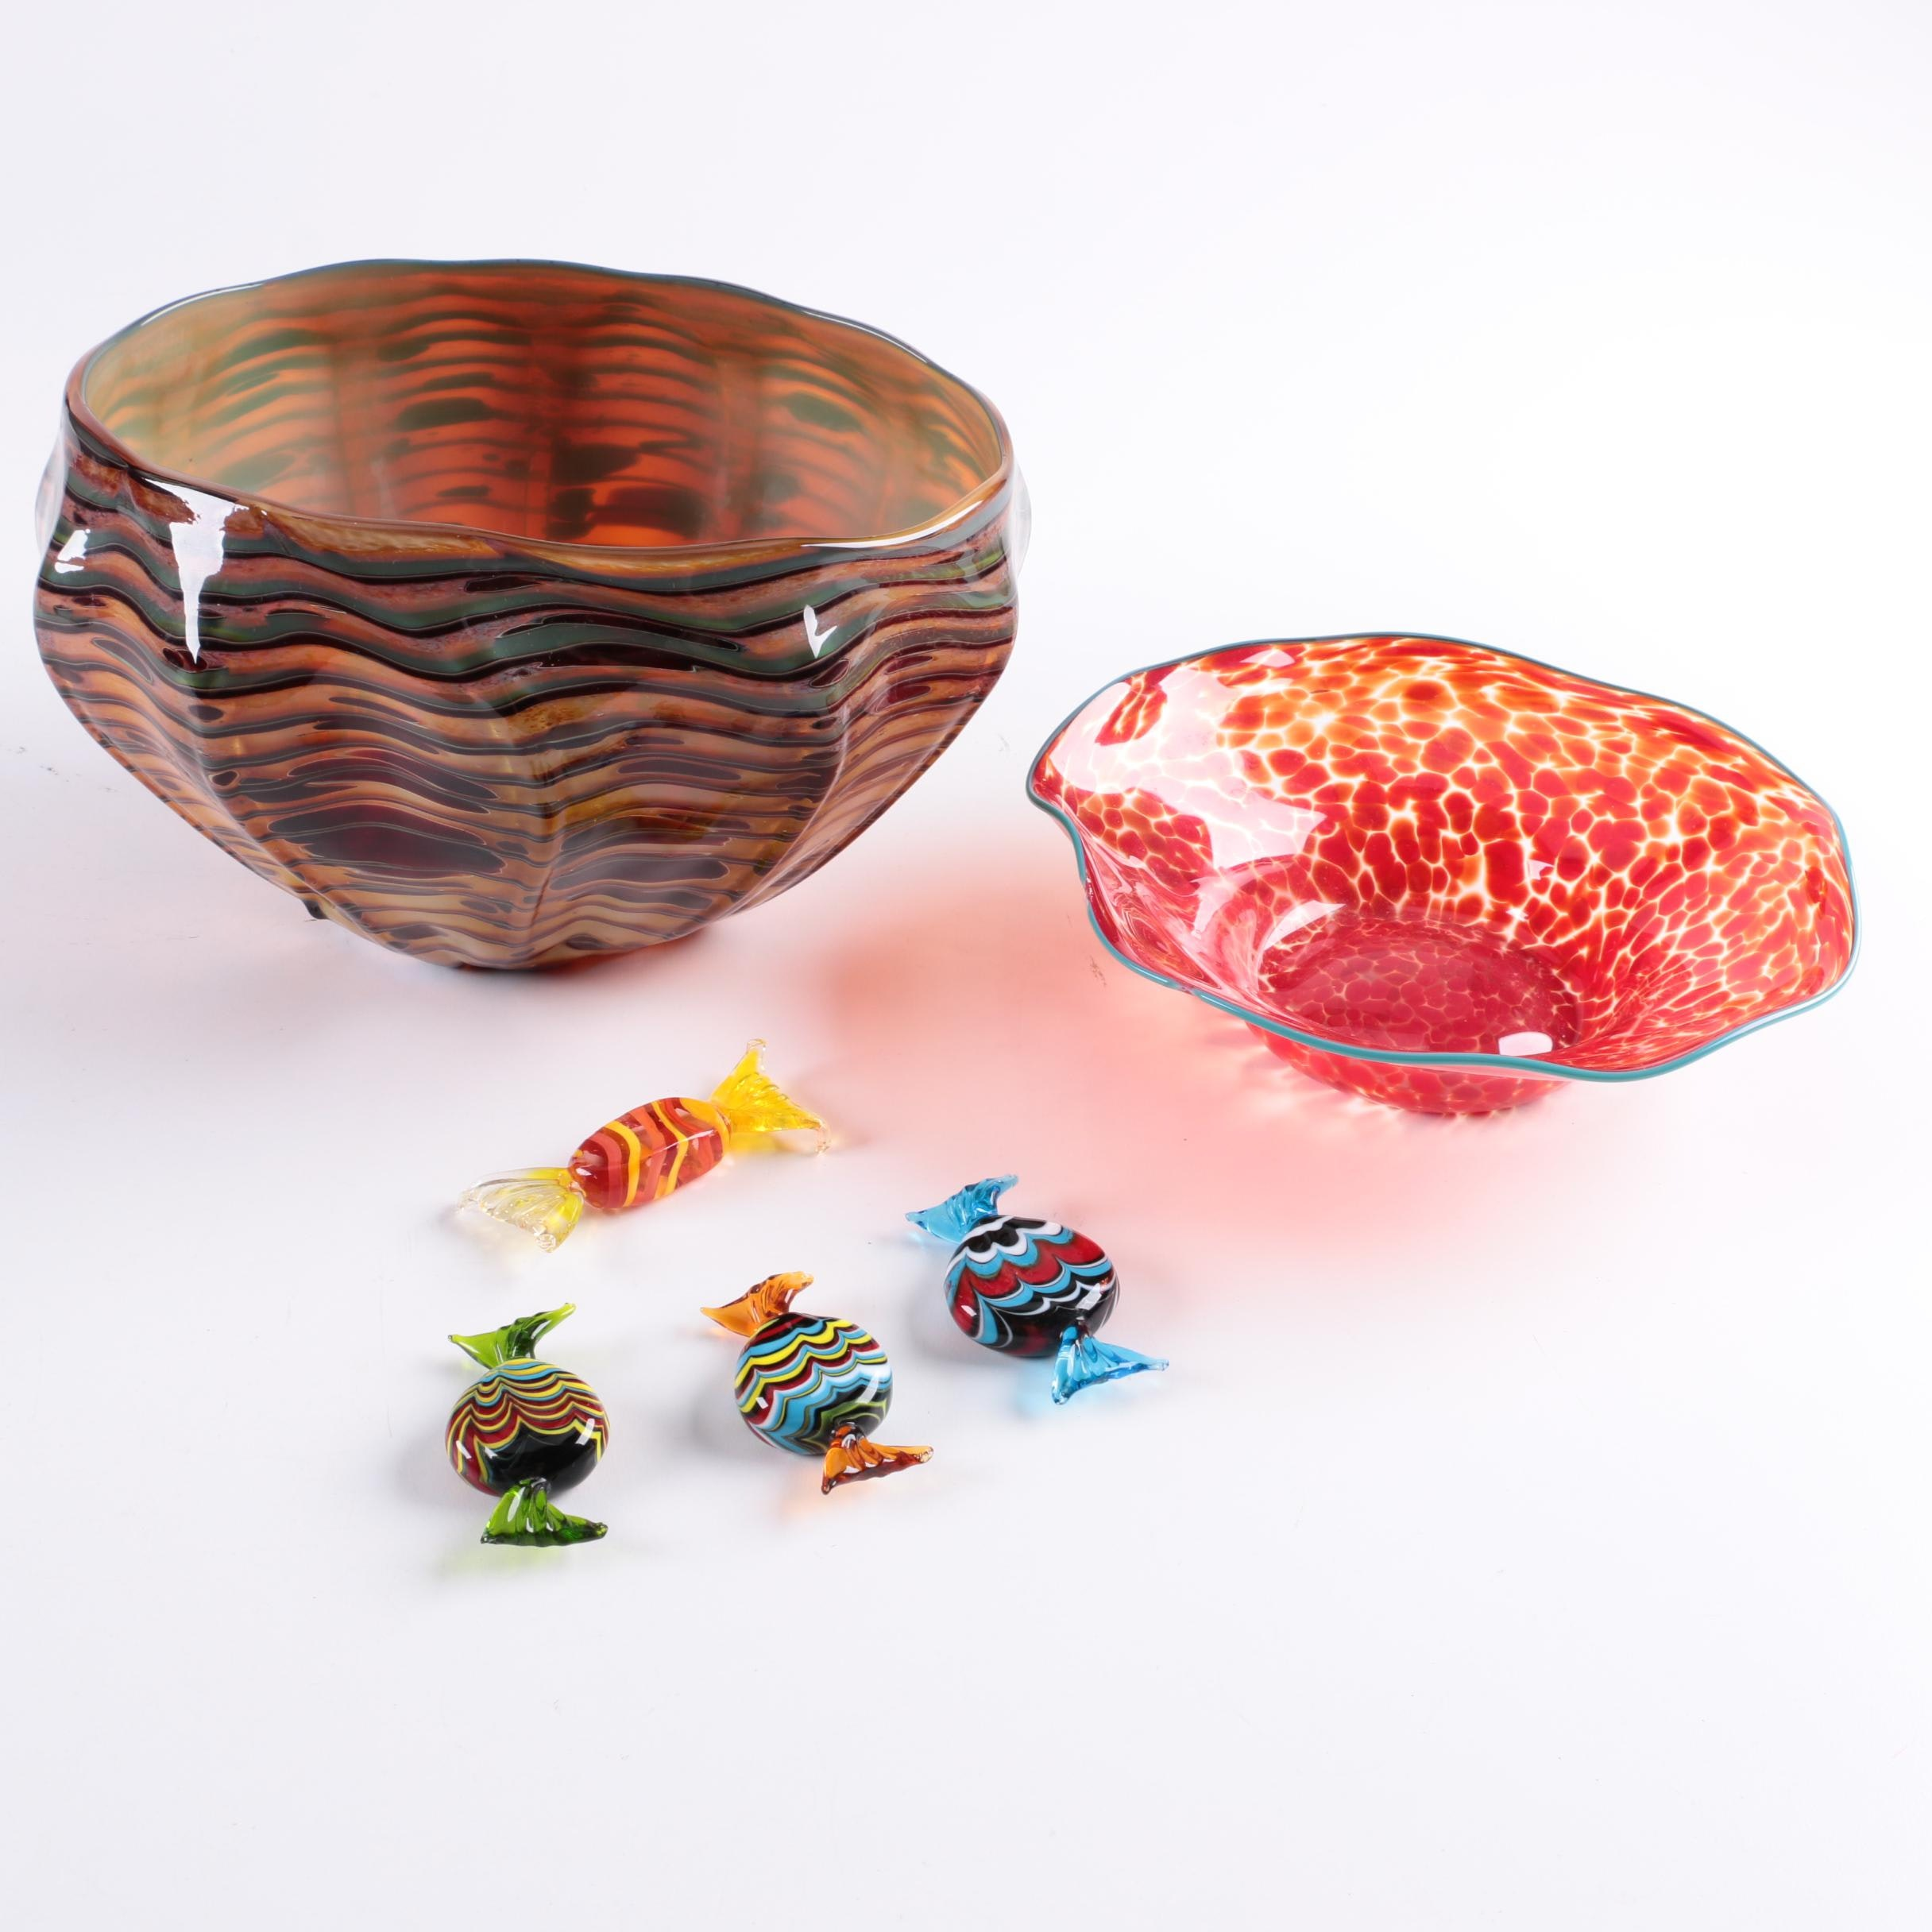 Blown Glass Bowls and Murano Glass Wrapped Candies